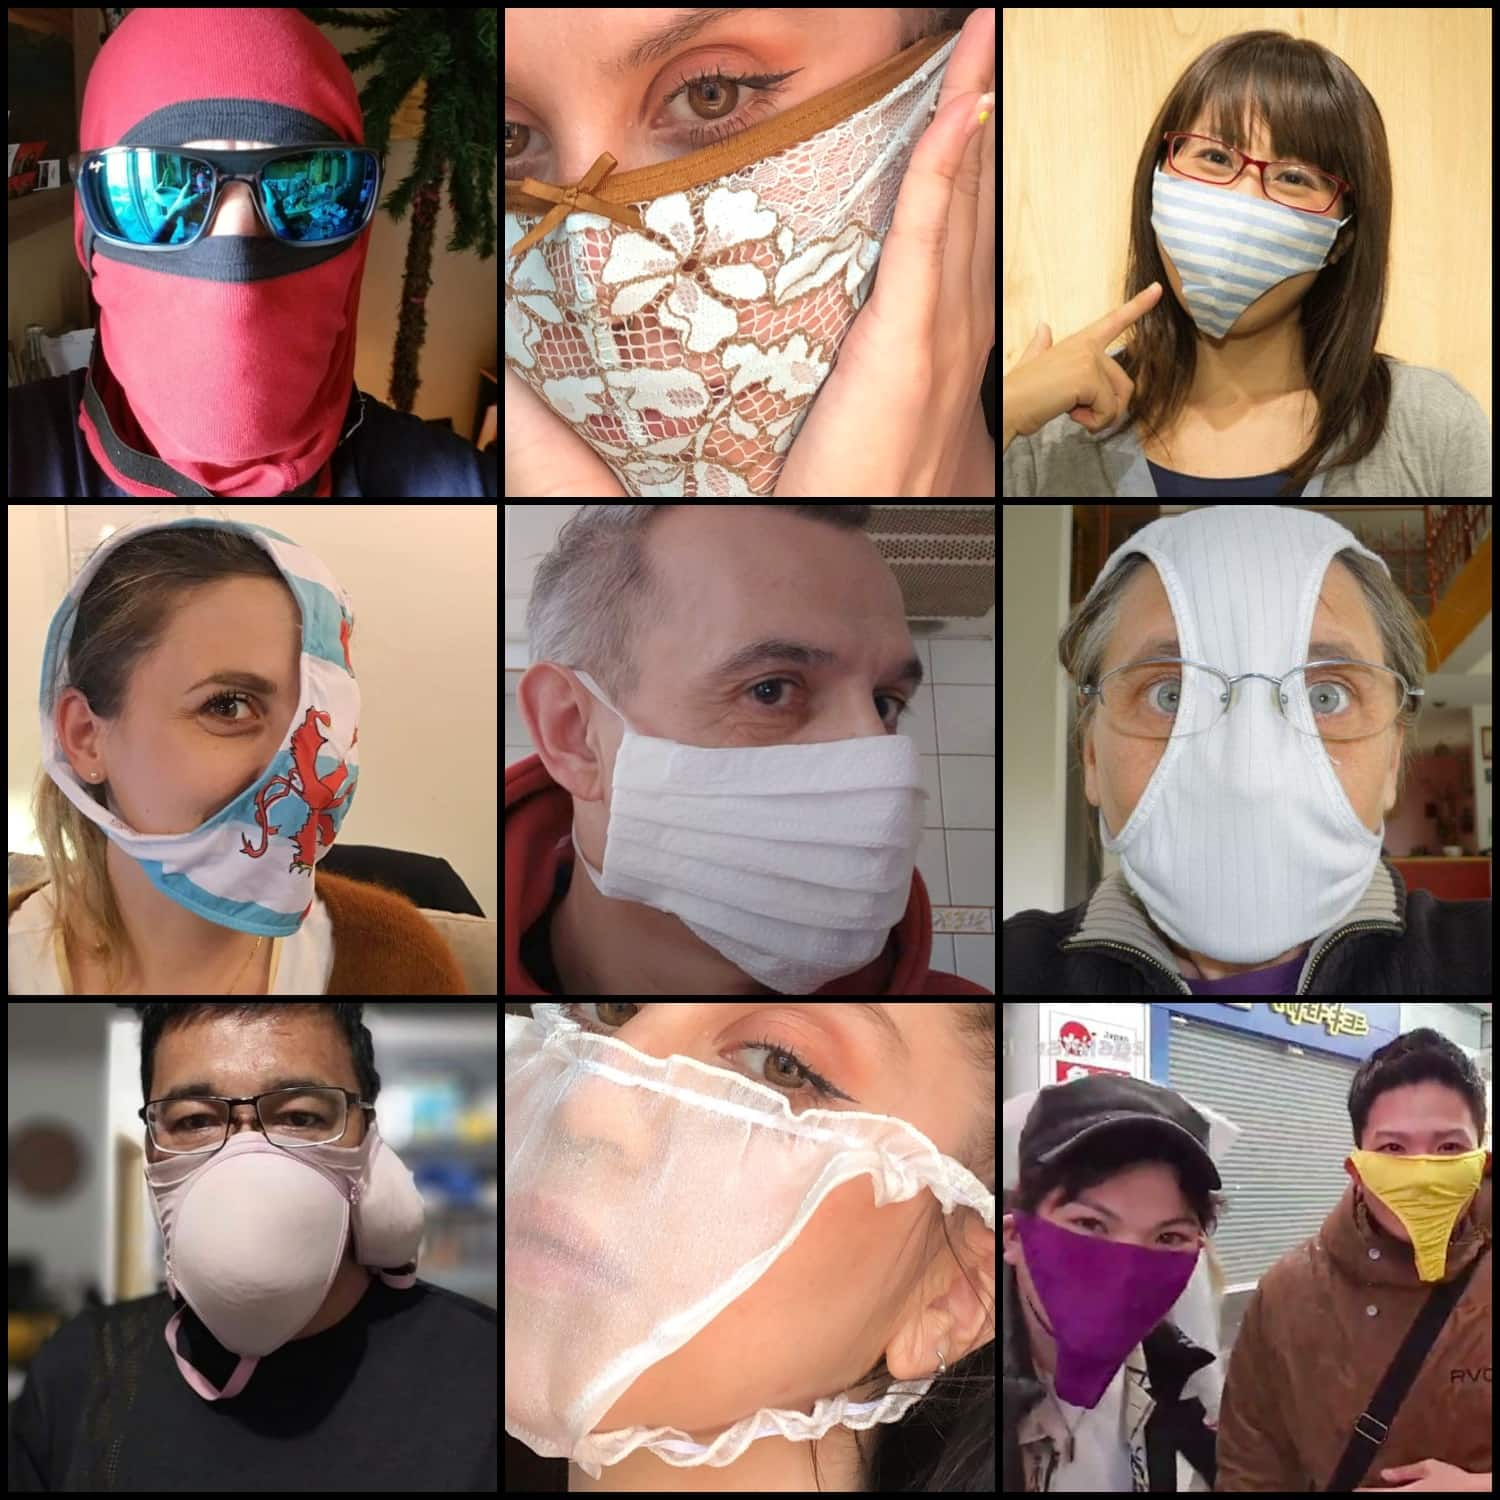 Useless and plain stupid ways to make face masks for protection against coronavirus. Panties can make you look very glamorous - that's what bloggers are trying to sell today on instagram. Men Boxers can make you look like a ninja or spiderman. Various underwear, bras included can make you look just plain stupid. Toilet paper face masks (photo in the middle) might look dissent at first but.... it is still toilet paper on the face.